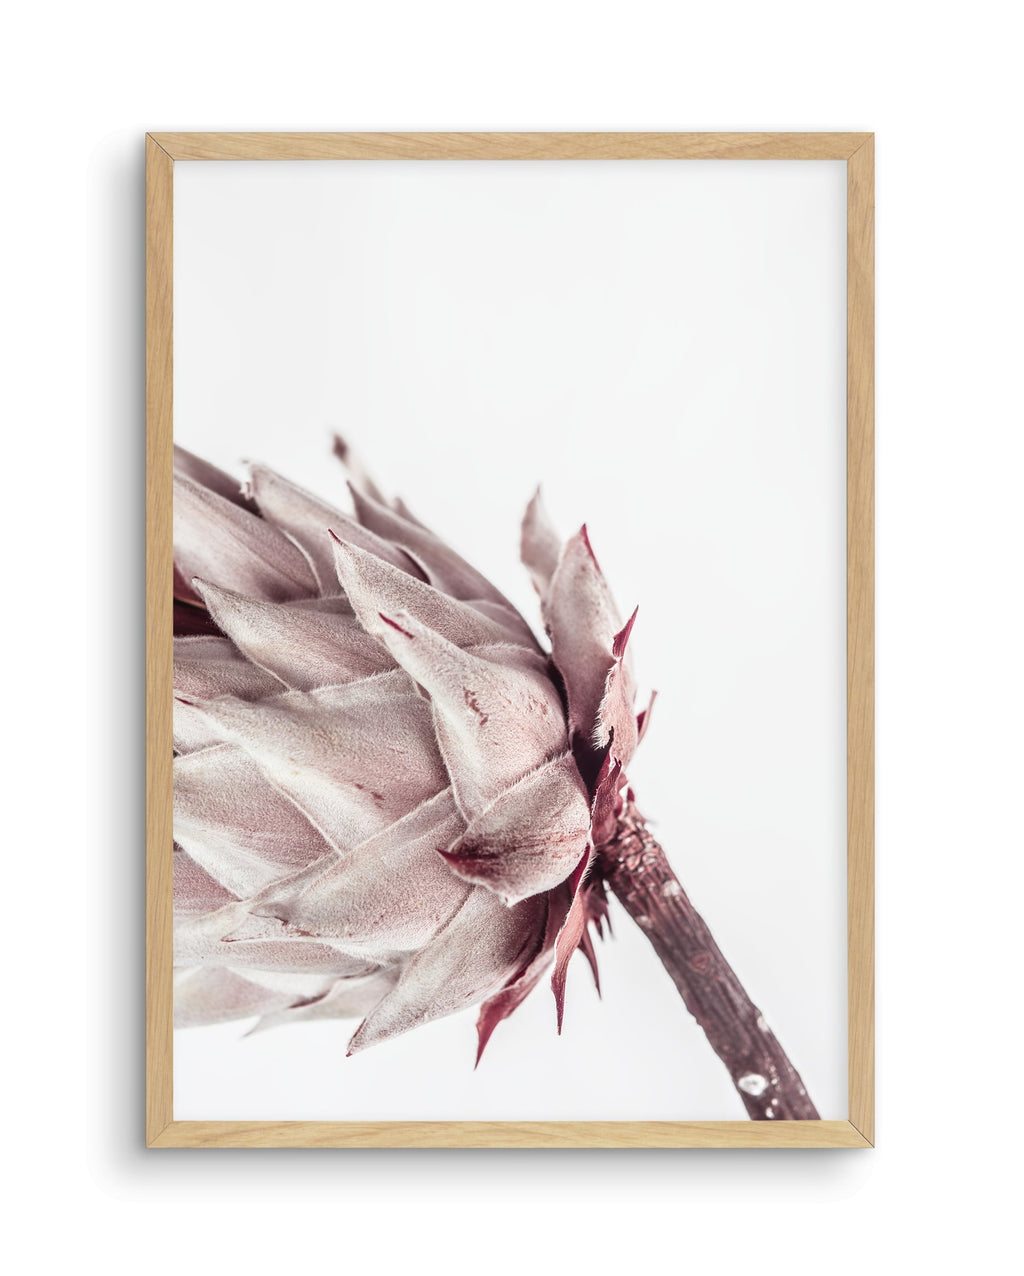 Abstract Protea No I - Olive et Oriel | Shop Art Prints & Posters Online